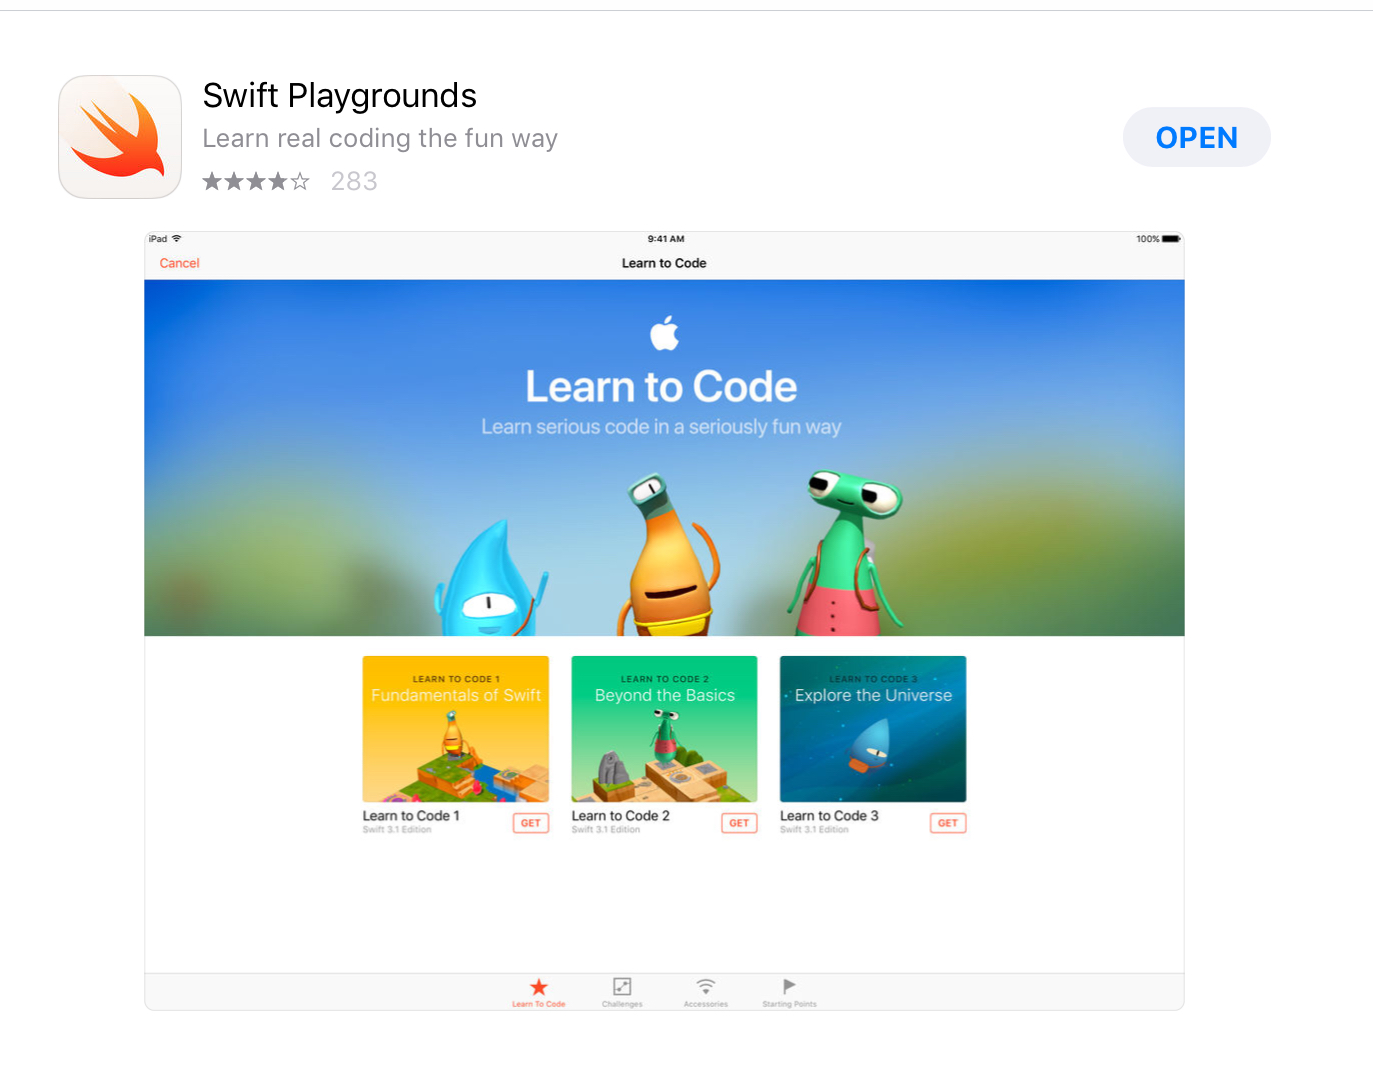 Download Apple's Swift Playgrounds from the App Store